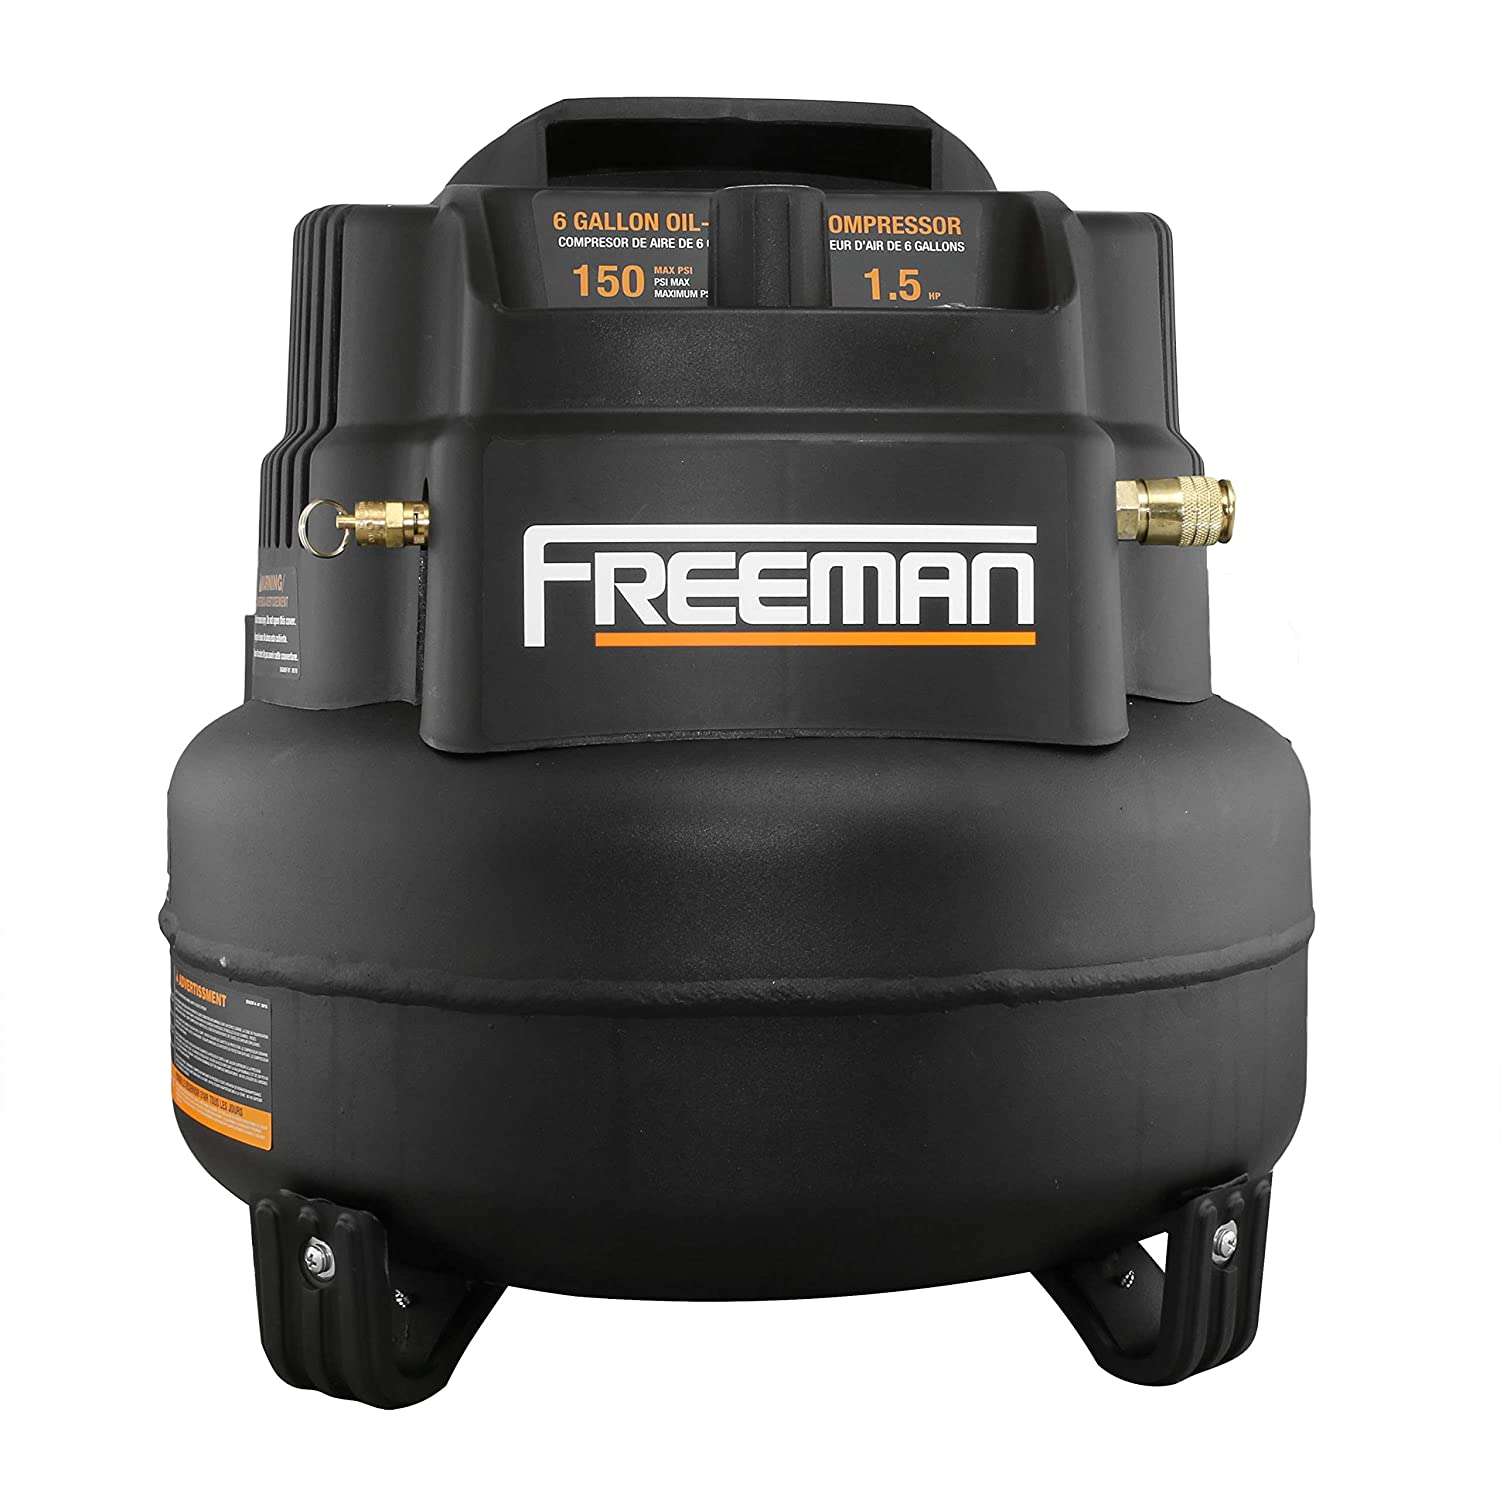 Amazon.com: Freeman 5-Piece Nailer Kit with 6 Gallon Air Compressor and Accessories: Home Improvement